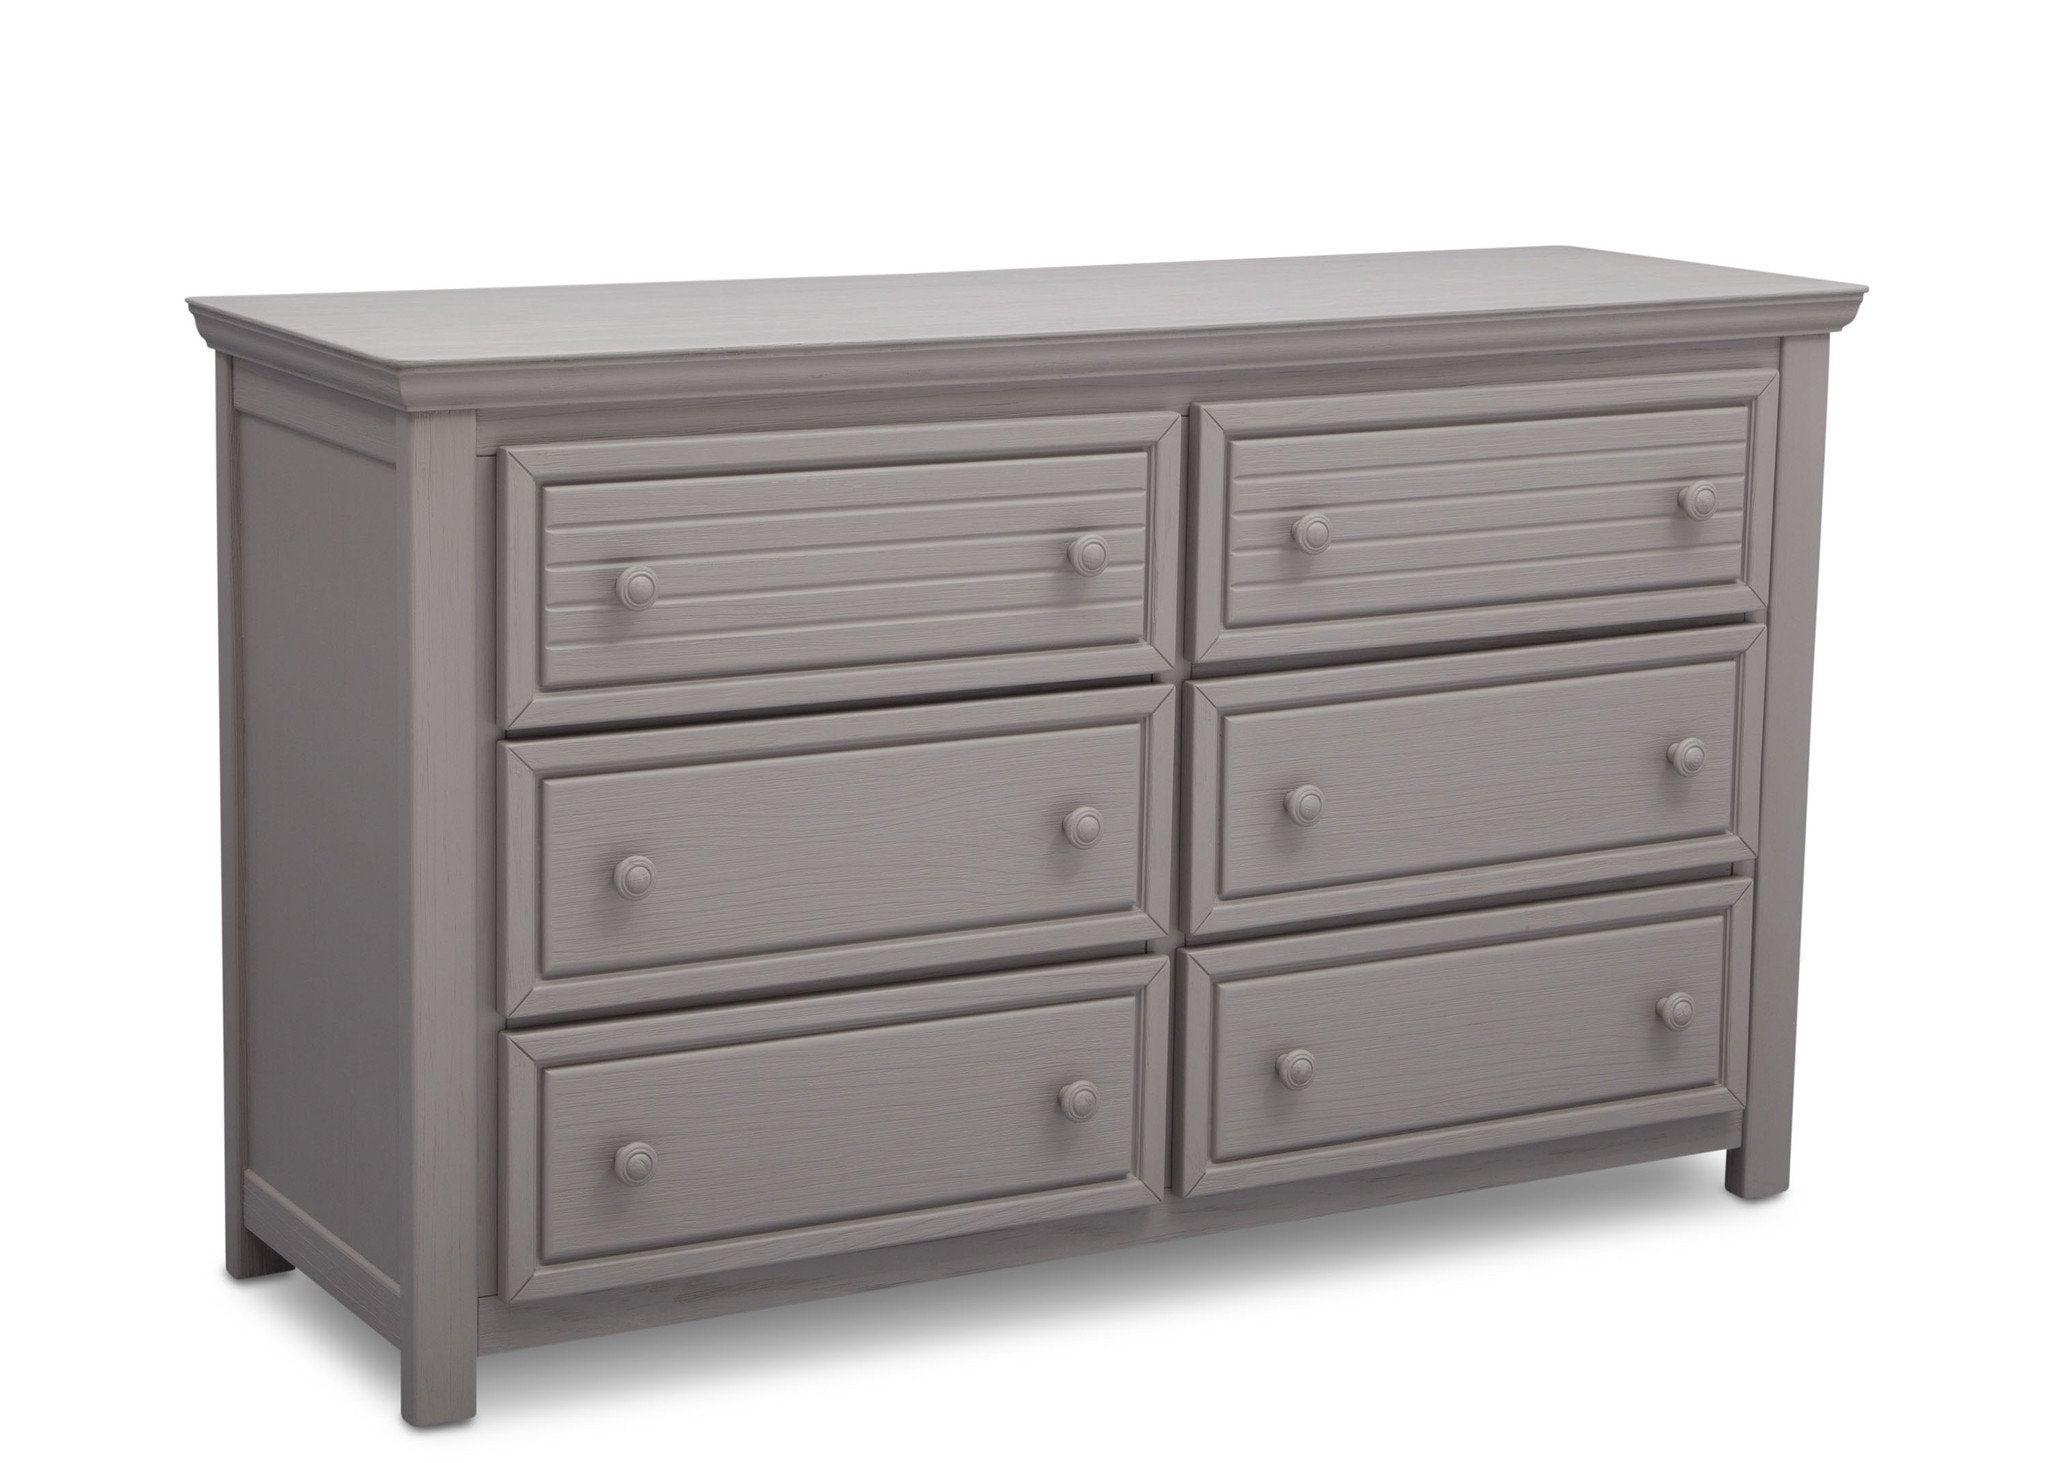 Simmons Kids Rustic Haze (940) Oakmont 6 Drawer Dresser, Side View b2b